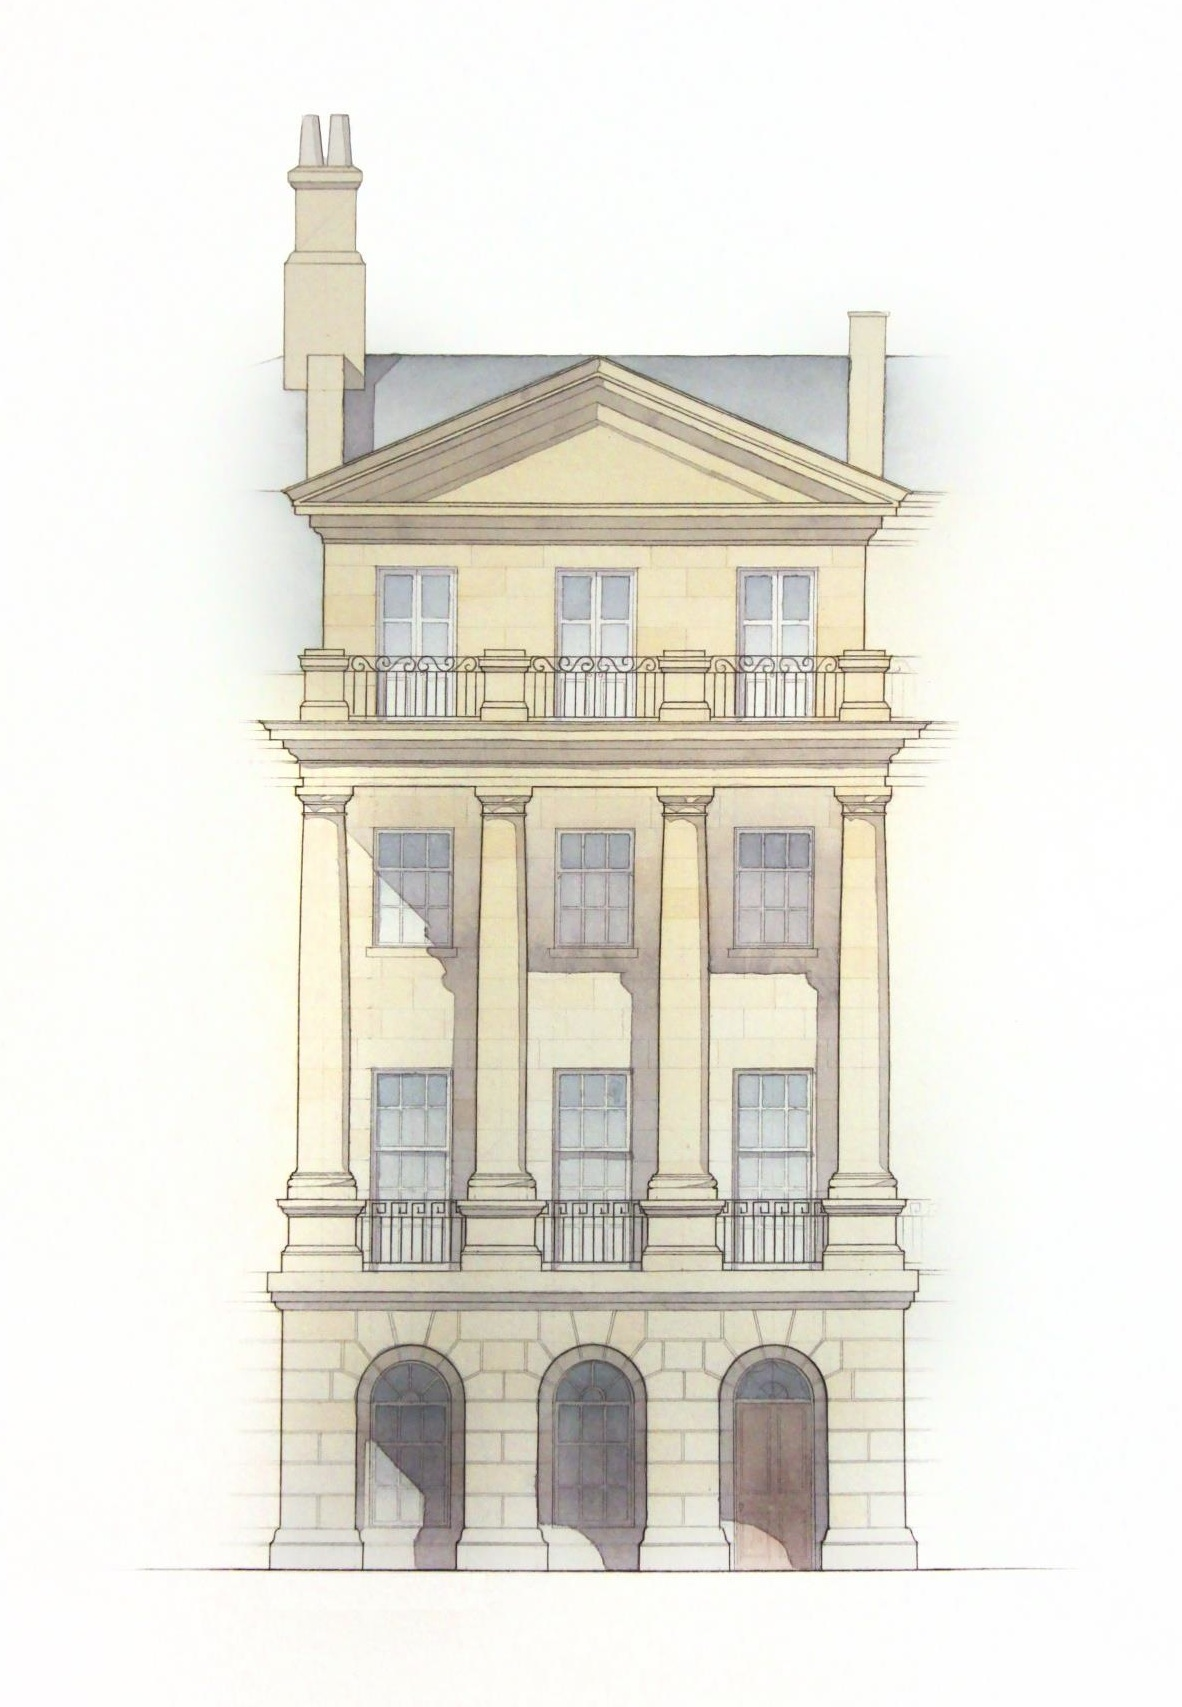 Bath, England - Proposal for Development within a World Heritage Site